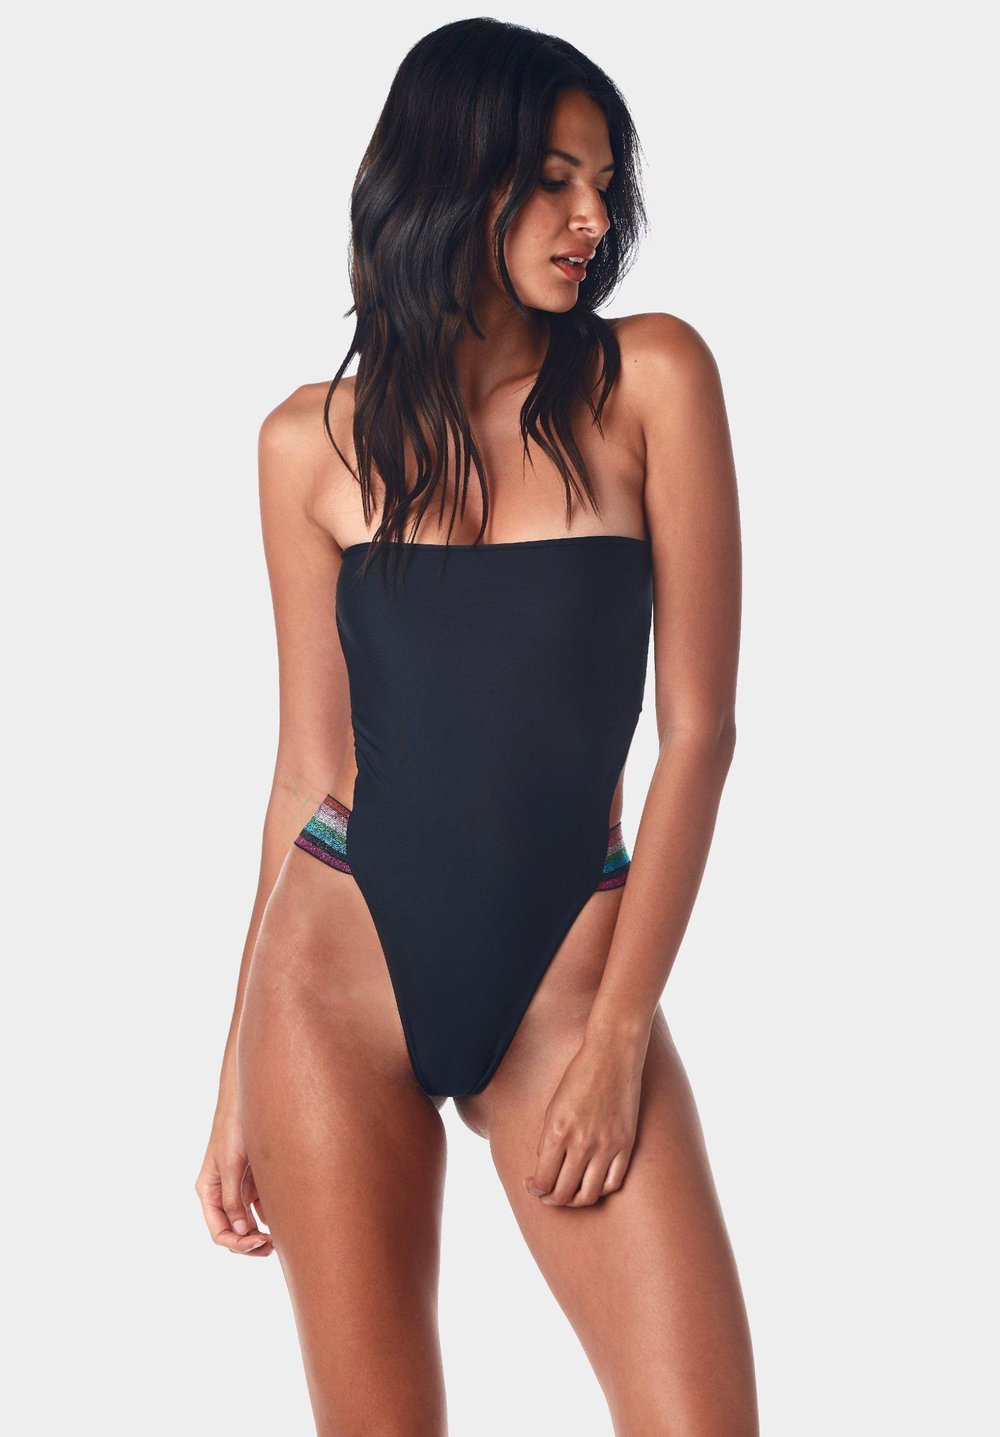 Kai Lani - Disco Nero One Piece - Luxe Cartel